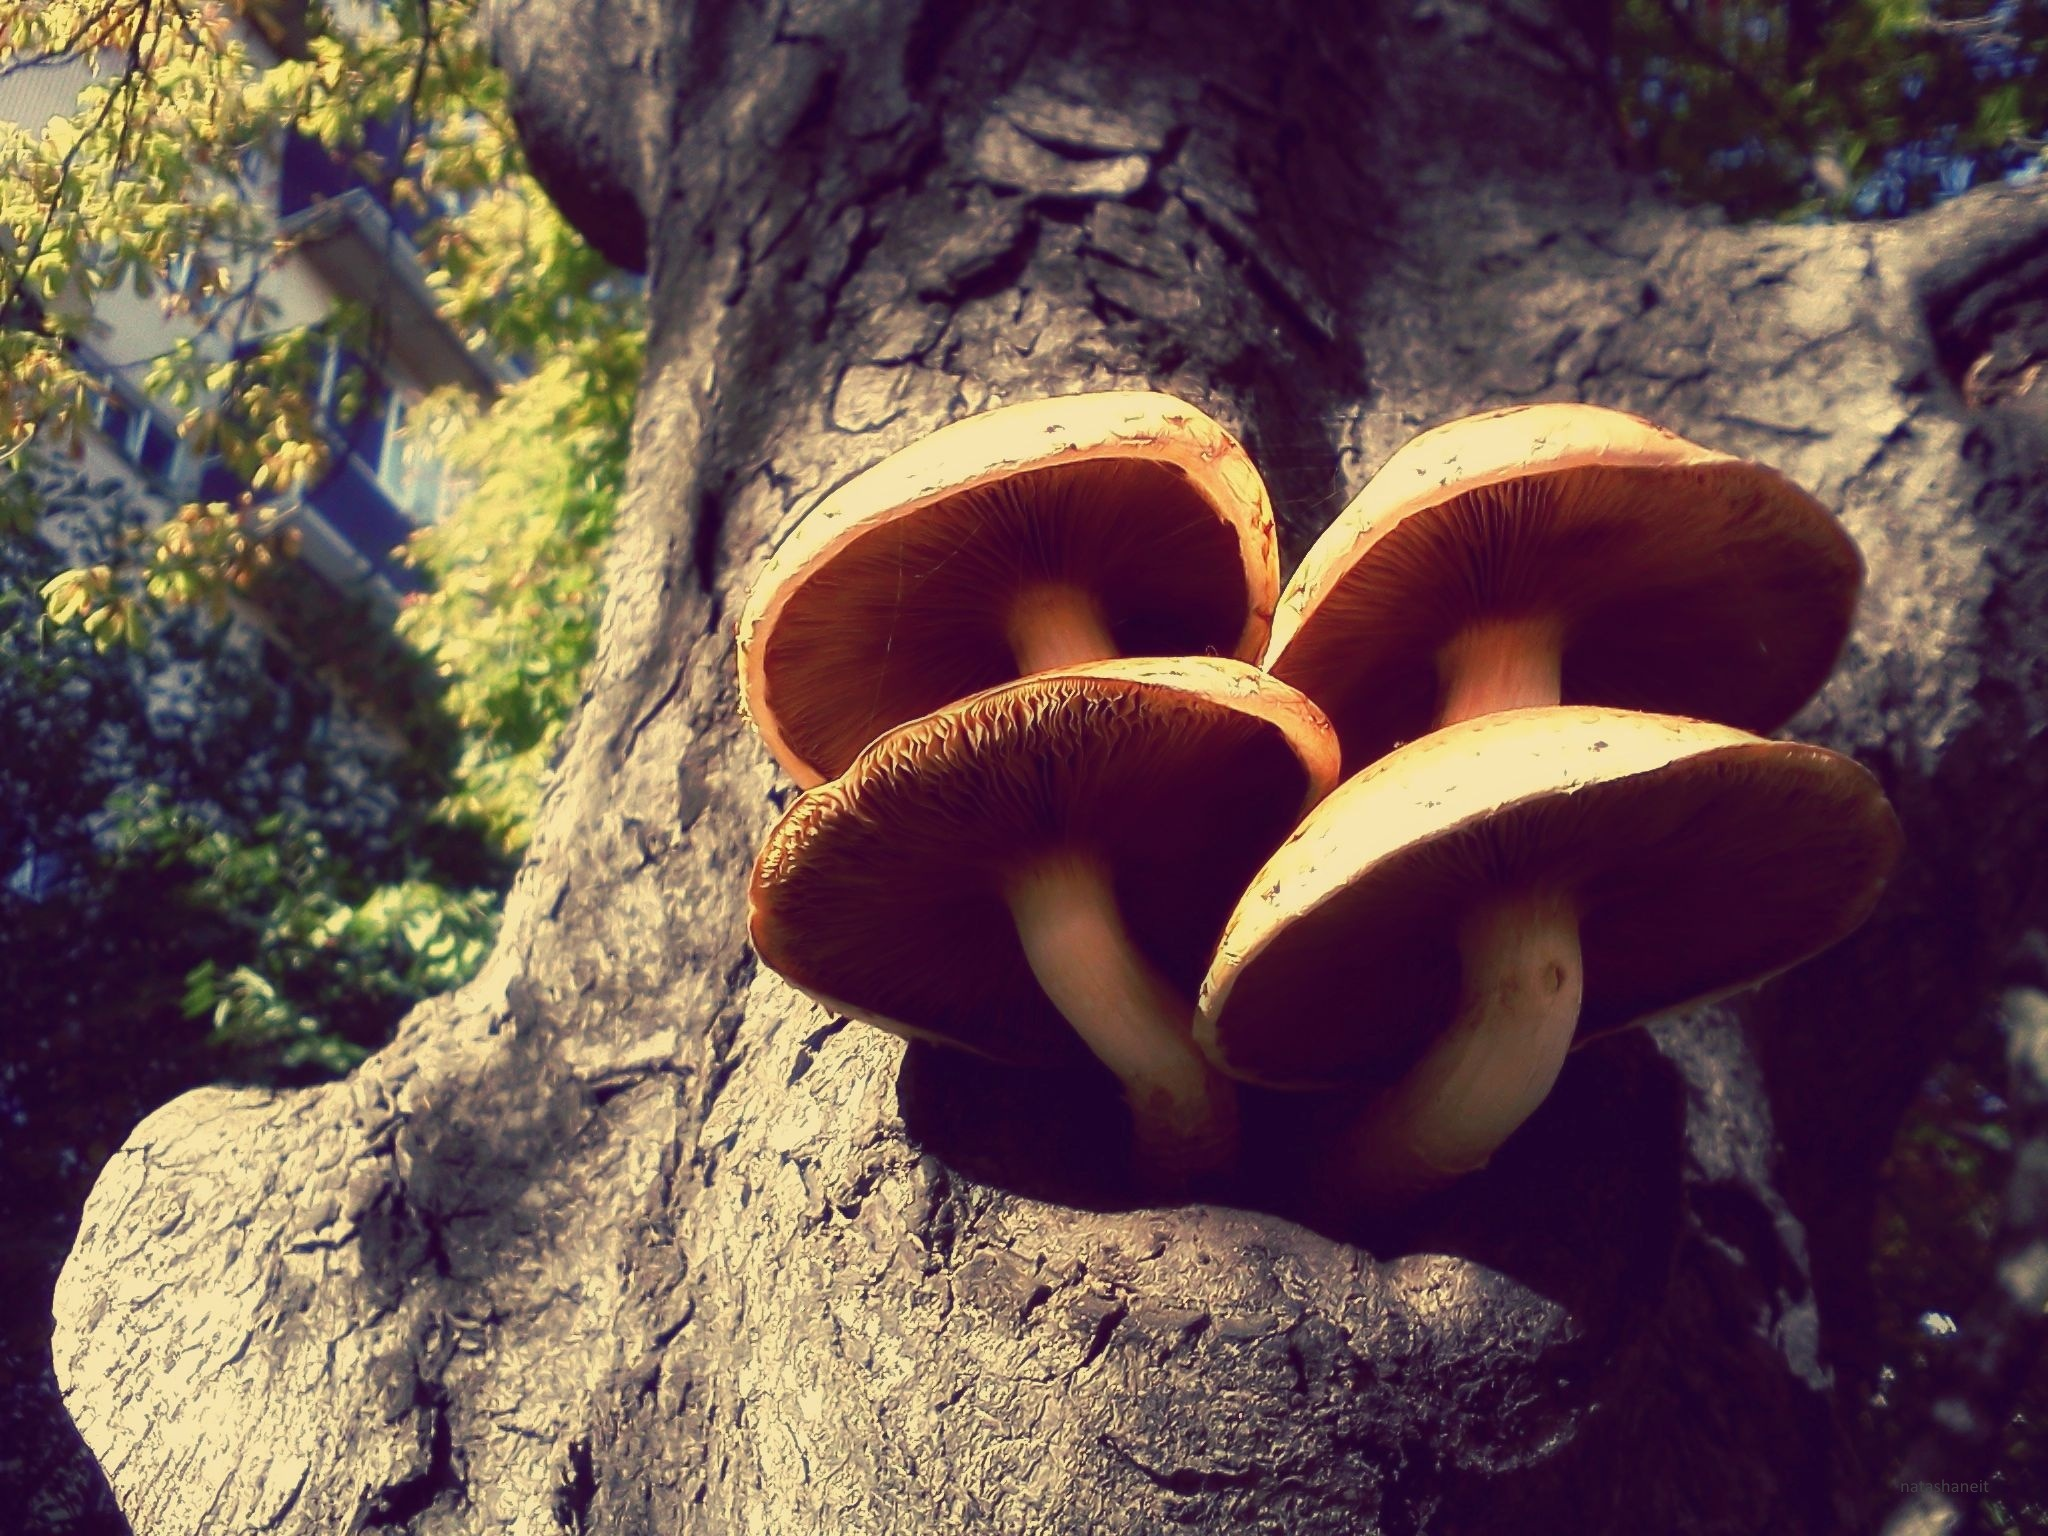 Mushrooms on a tree near our house today by natashaneit